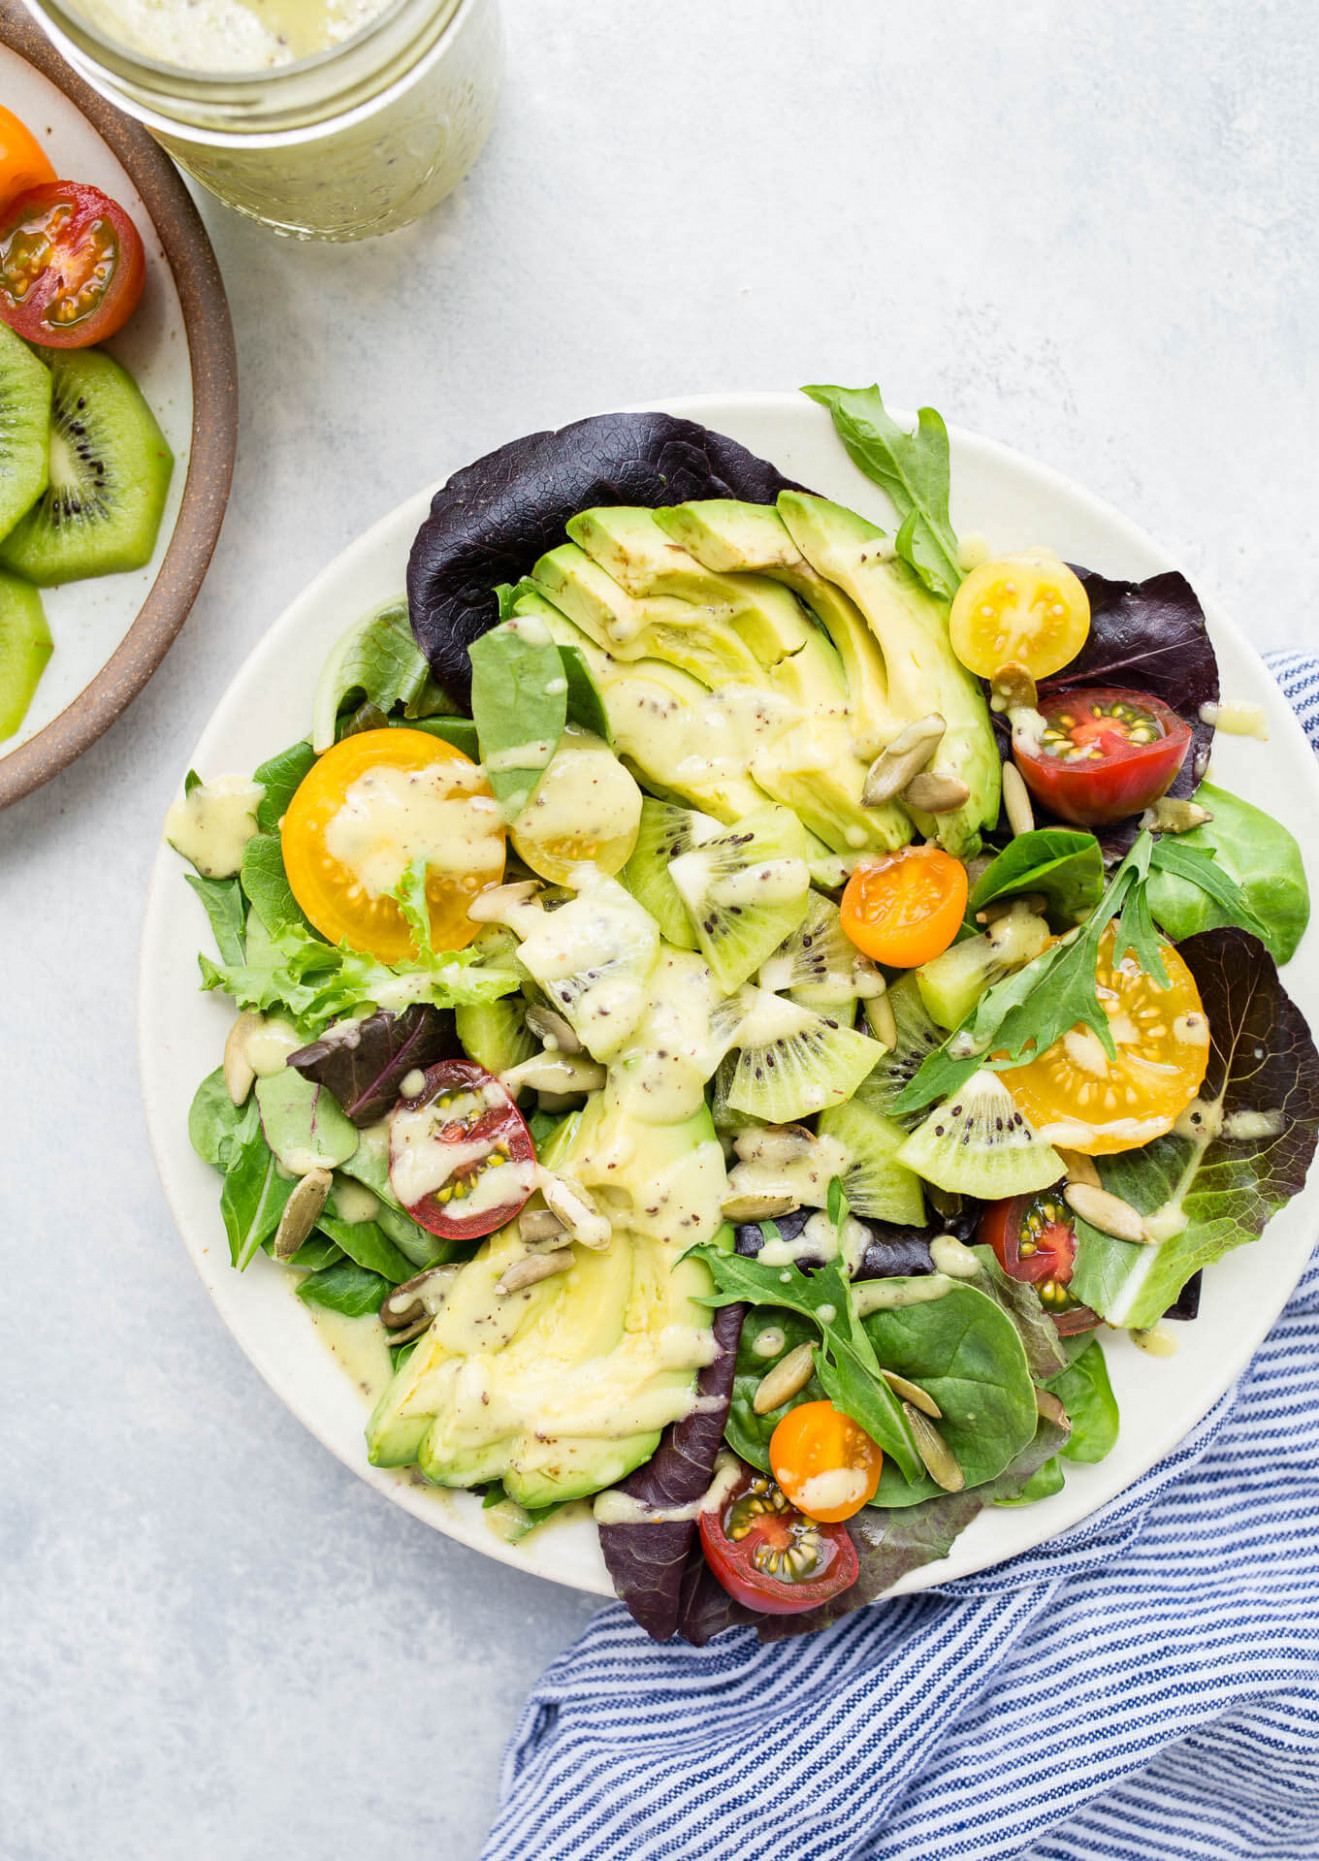 Kiwi Avocado And Tomato Salad With Kiwi Dressing - Recipes Vegetarian Avocado